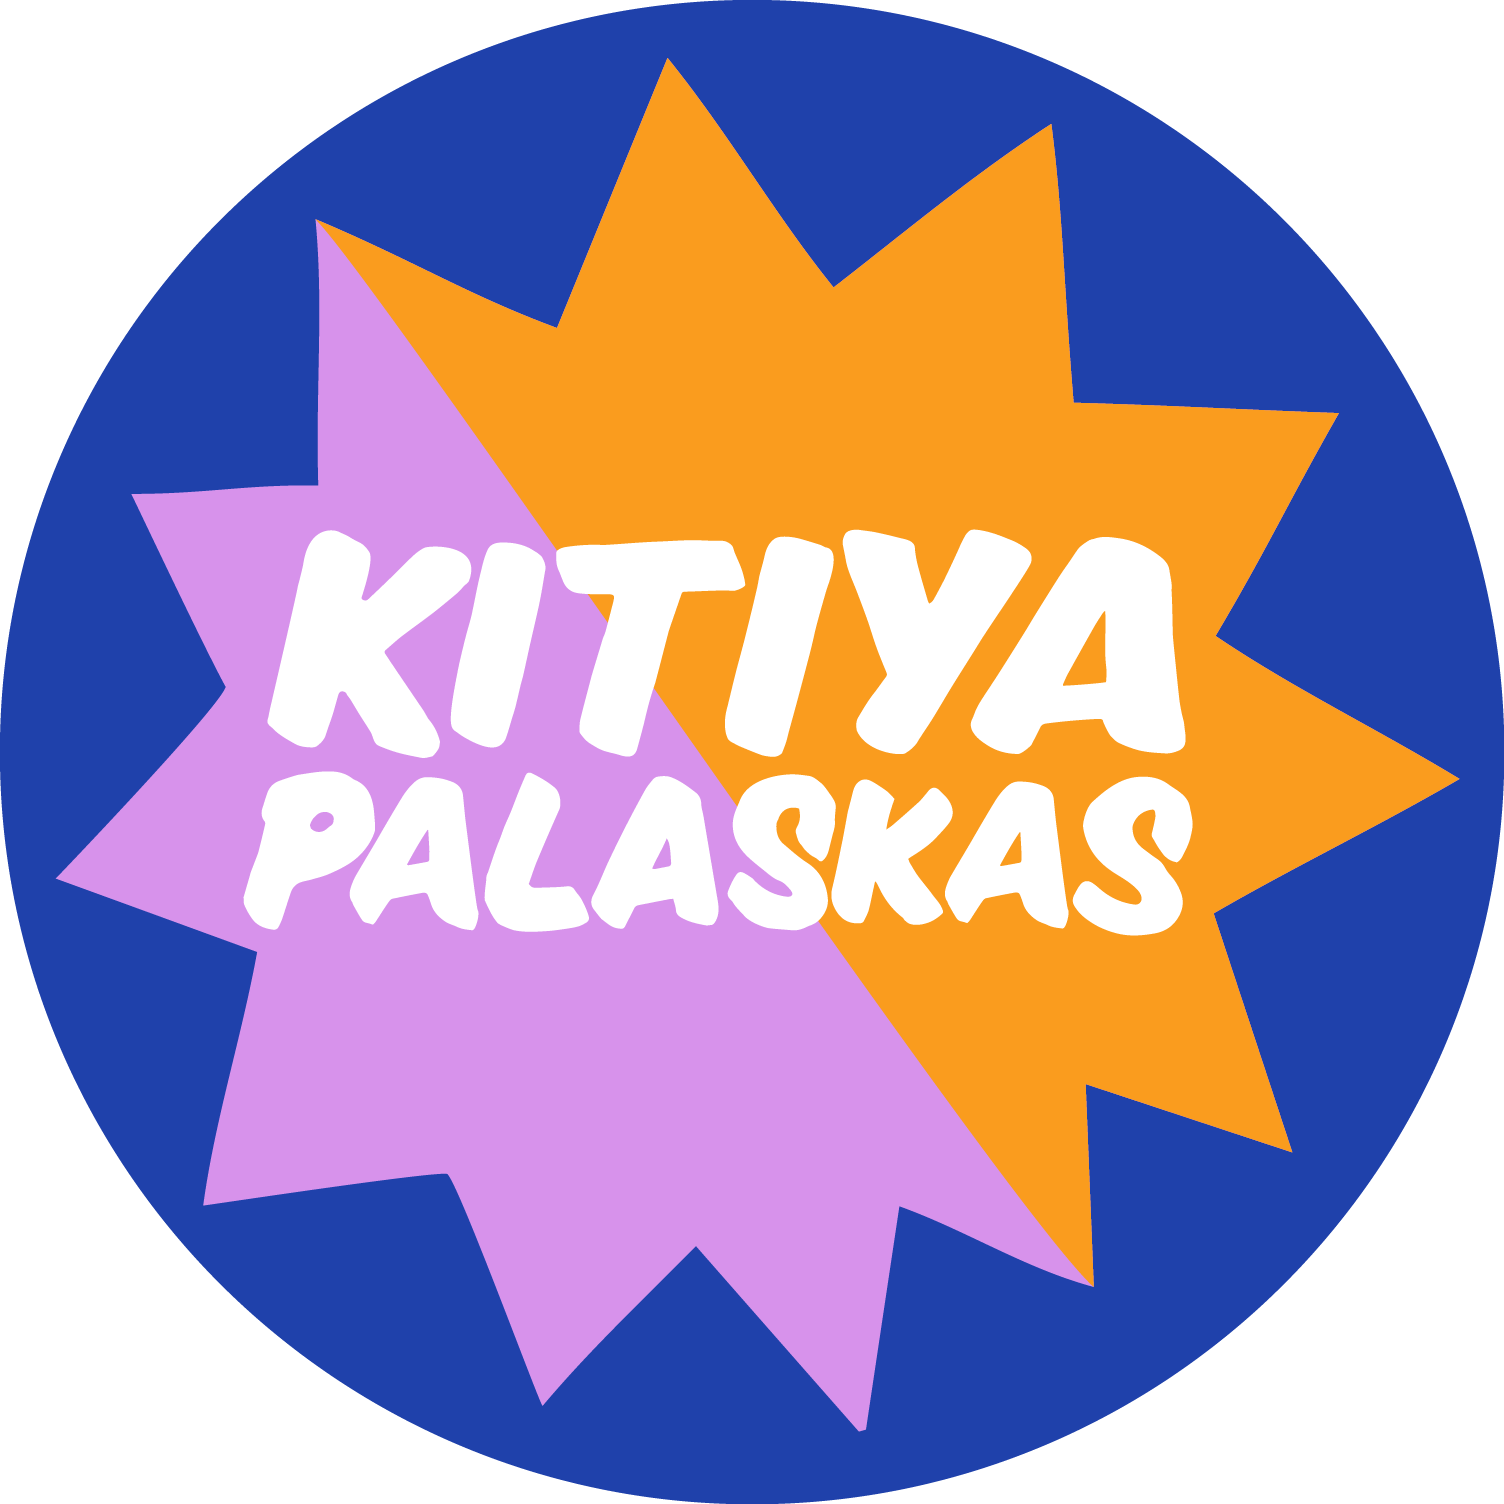 KP title logo.png